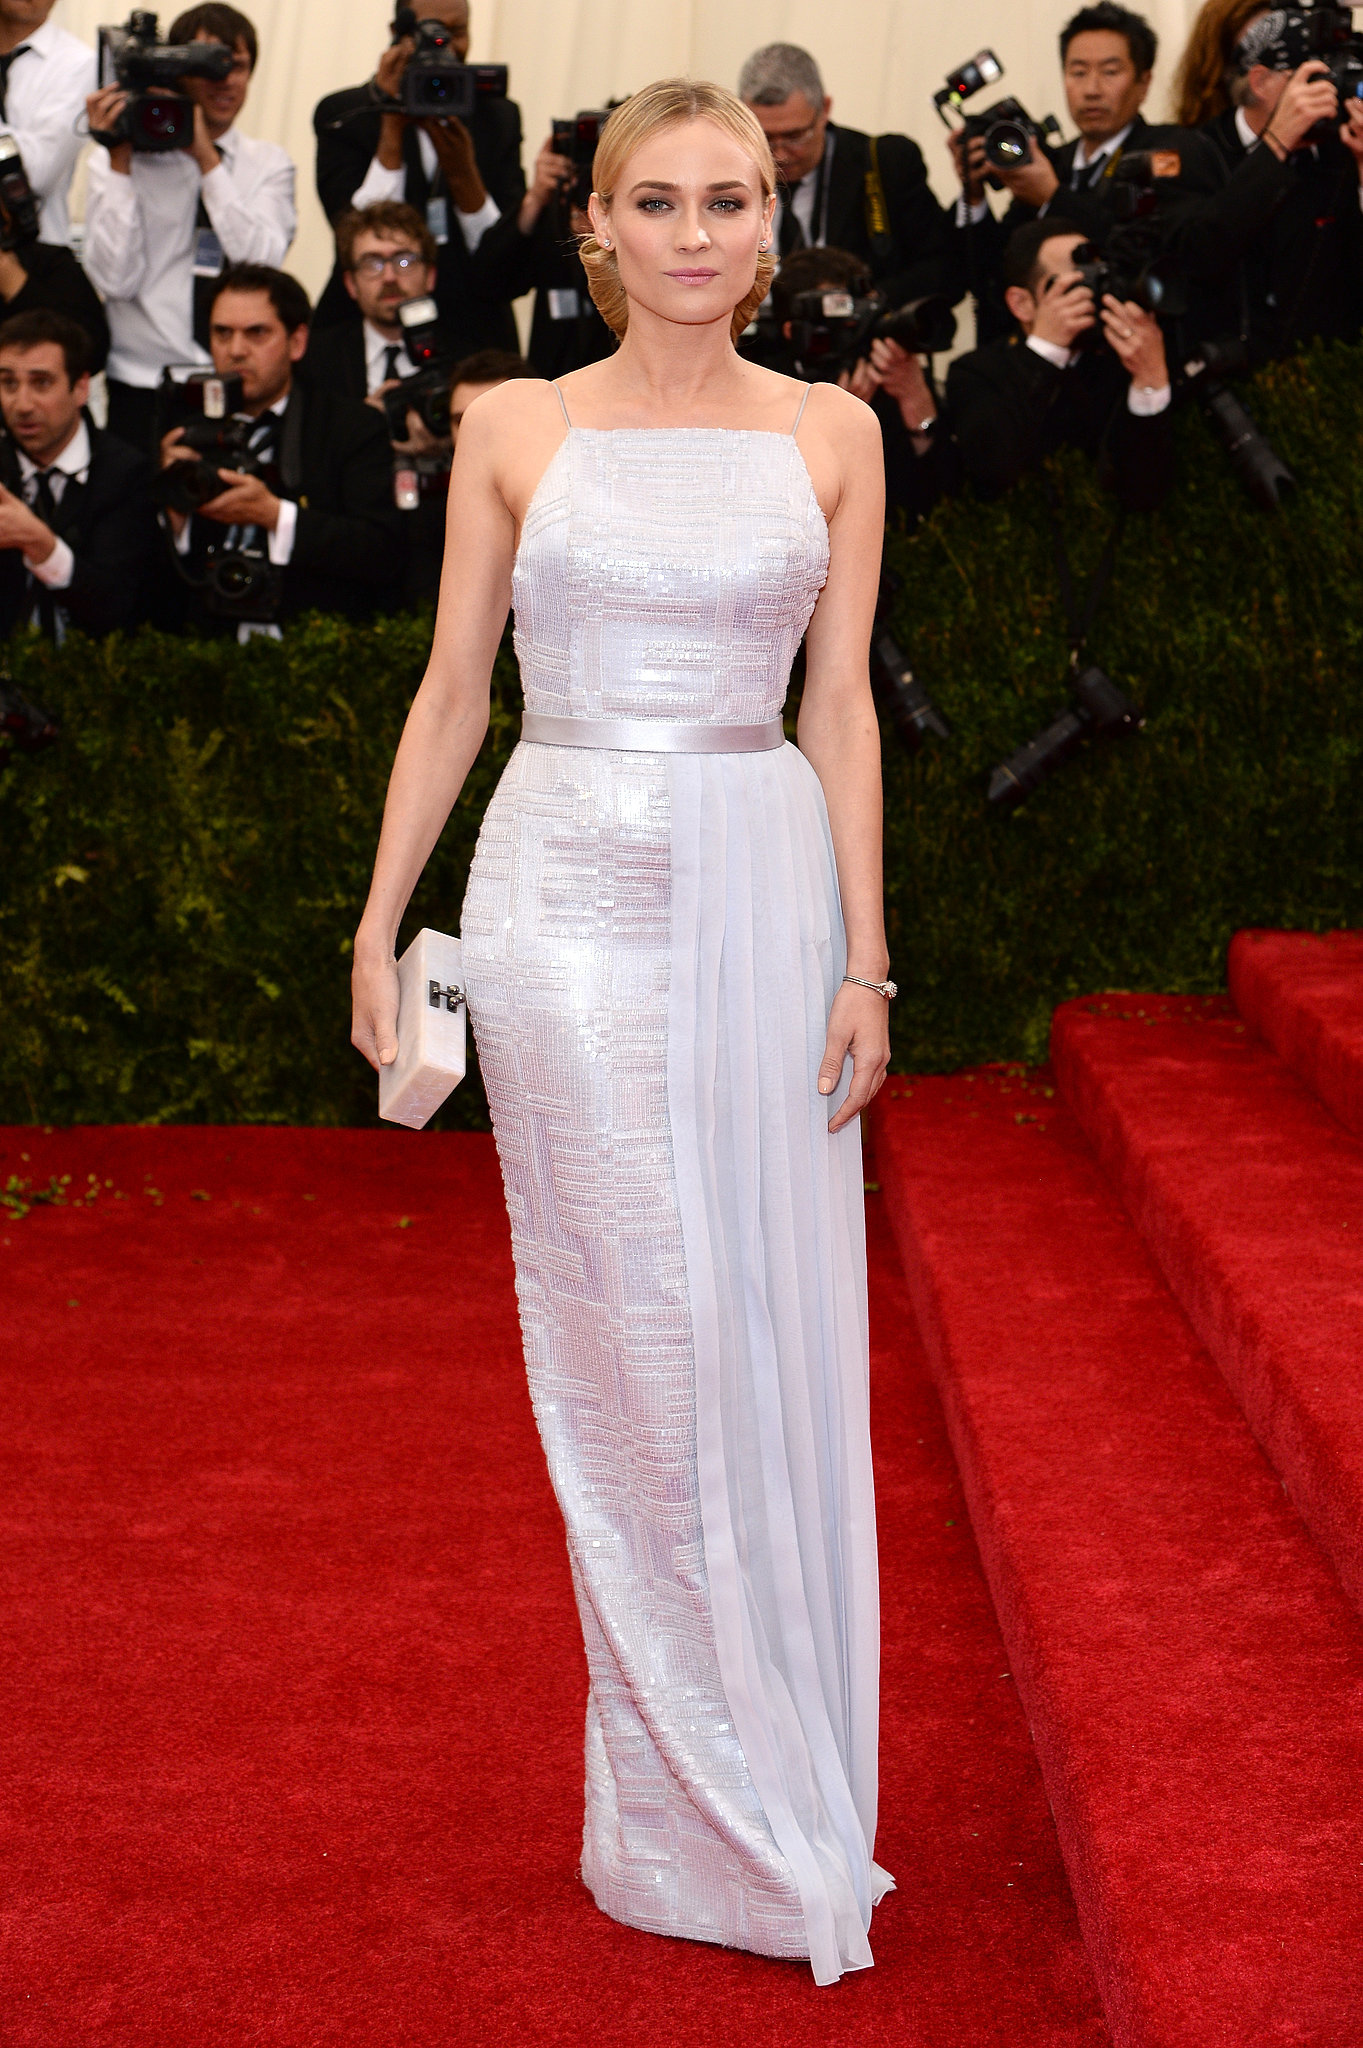 At the 2014 Met Gala, Diane stood out on the red carpet donning an embellished-panel Hugo Boss gown in a cool lilac hue.